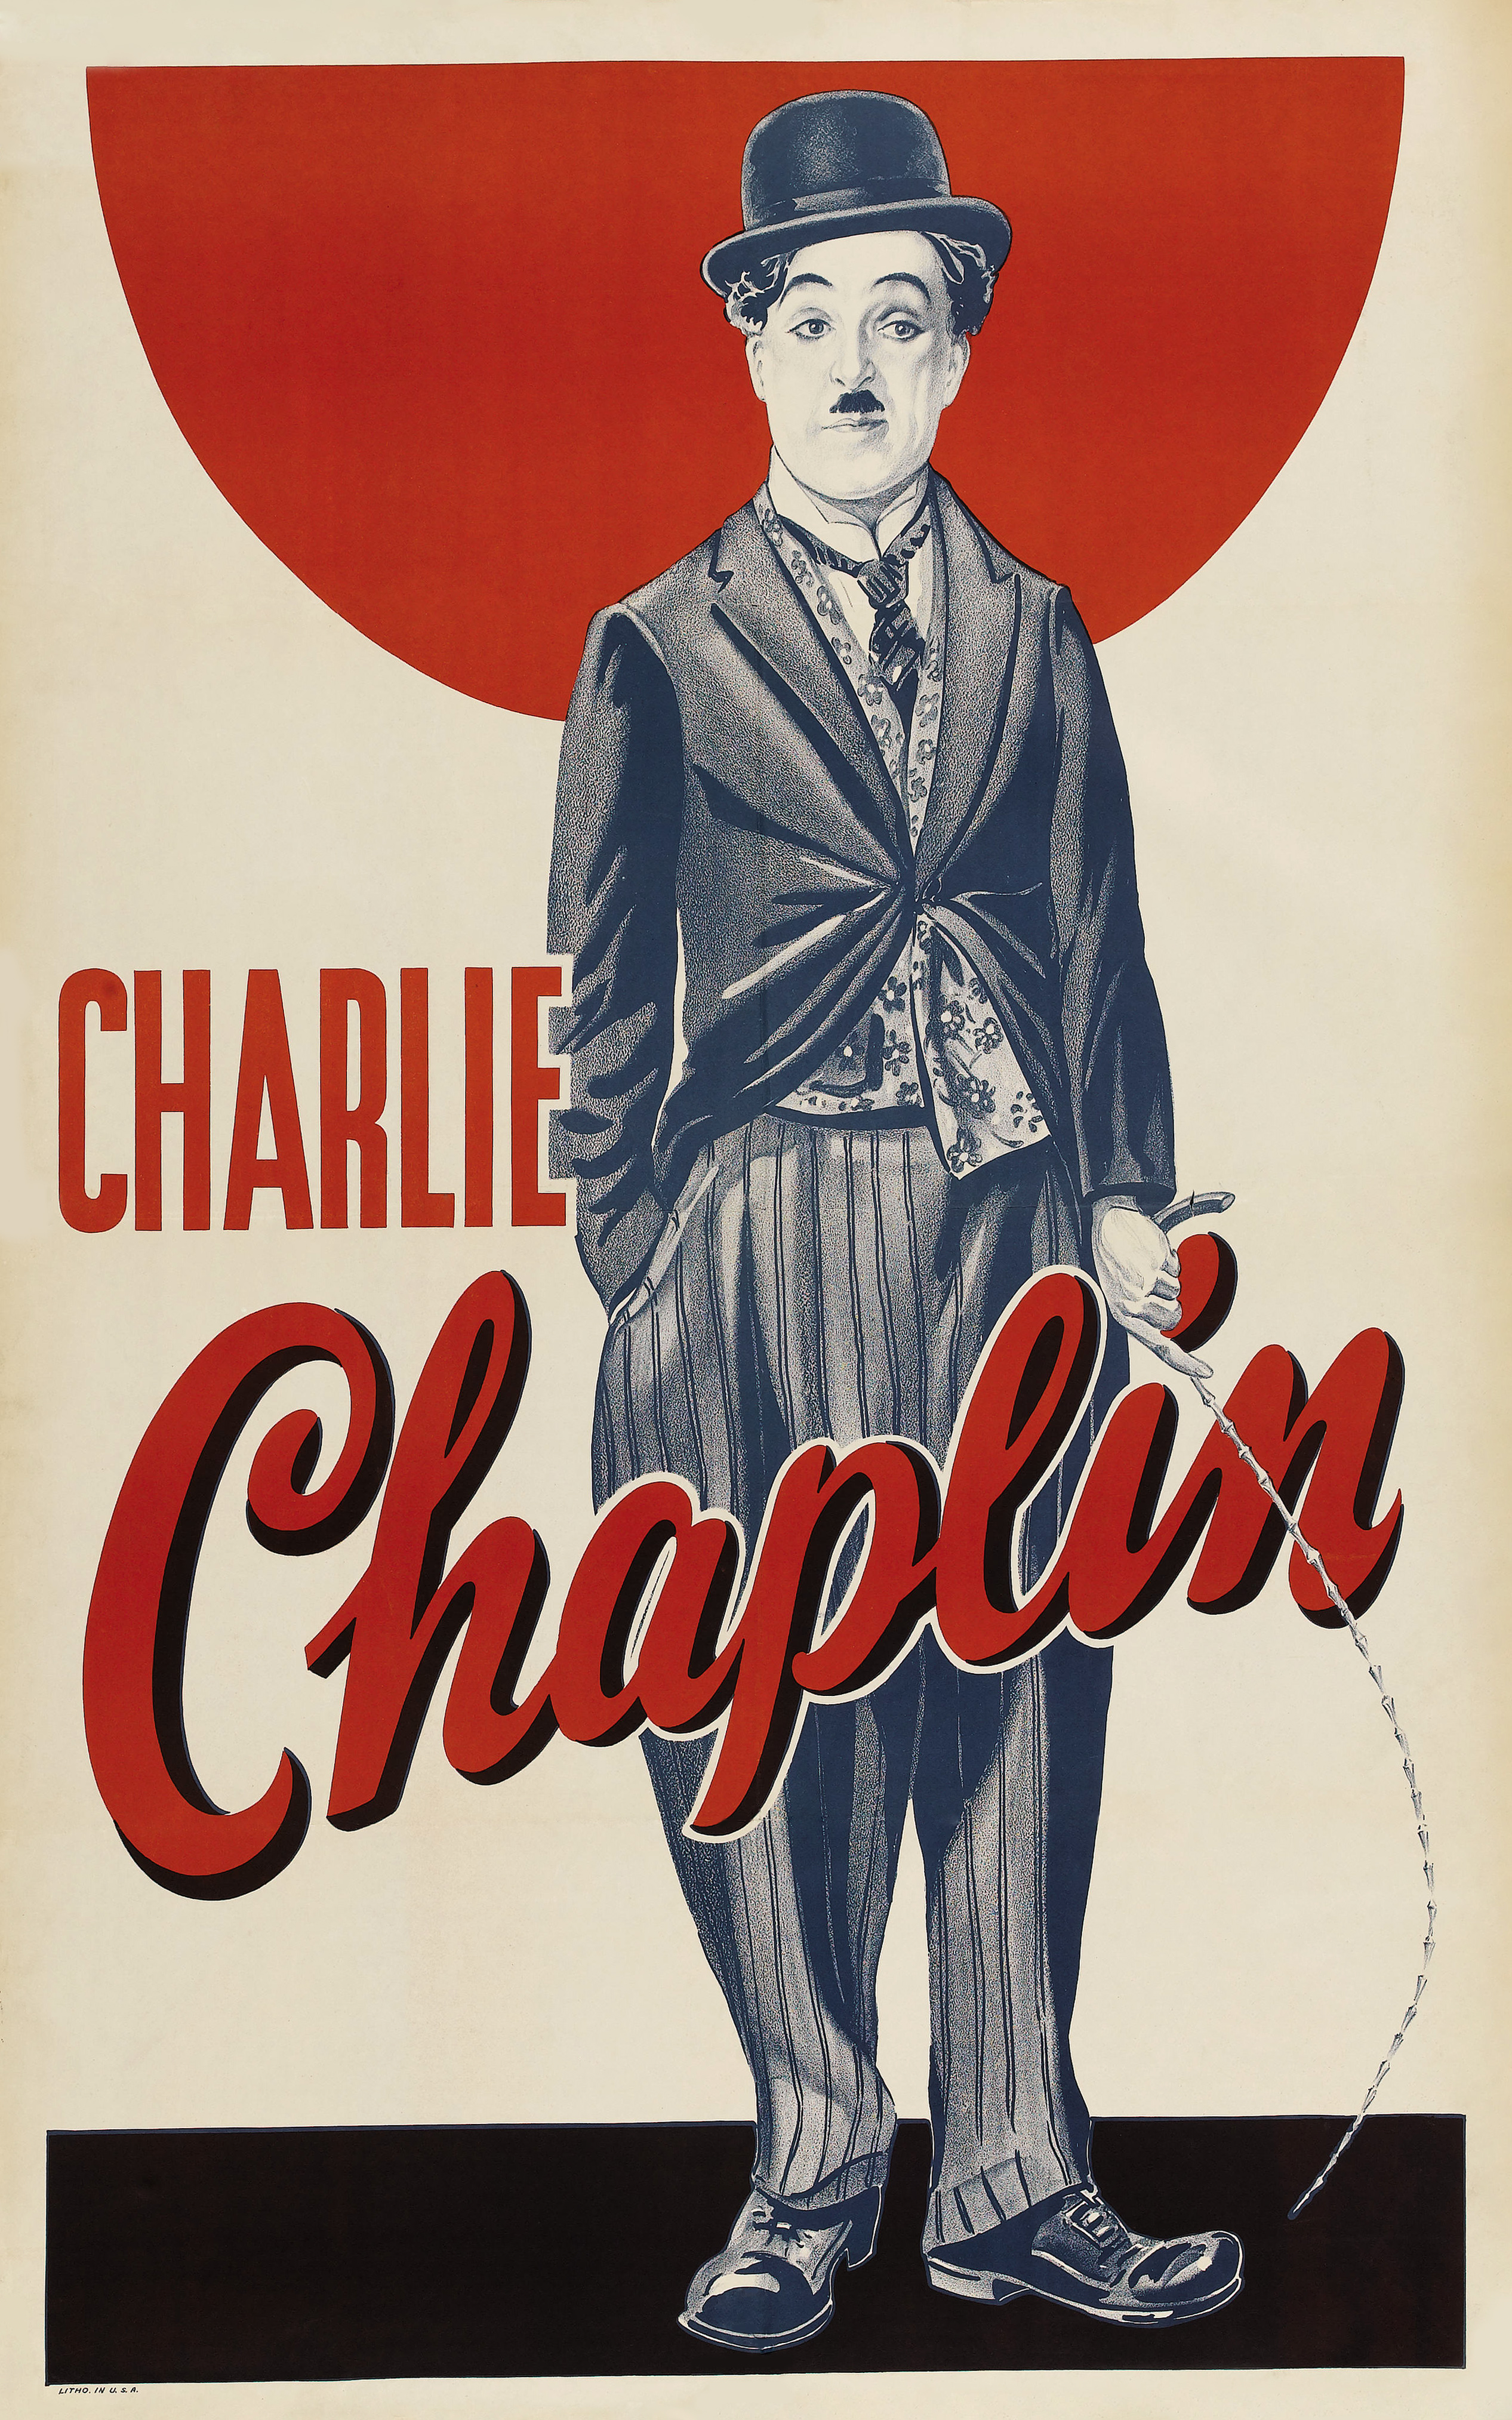 Charlie Chaplin Poster Silent Movie Cinema Free Download